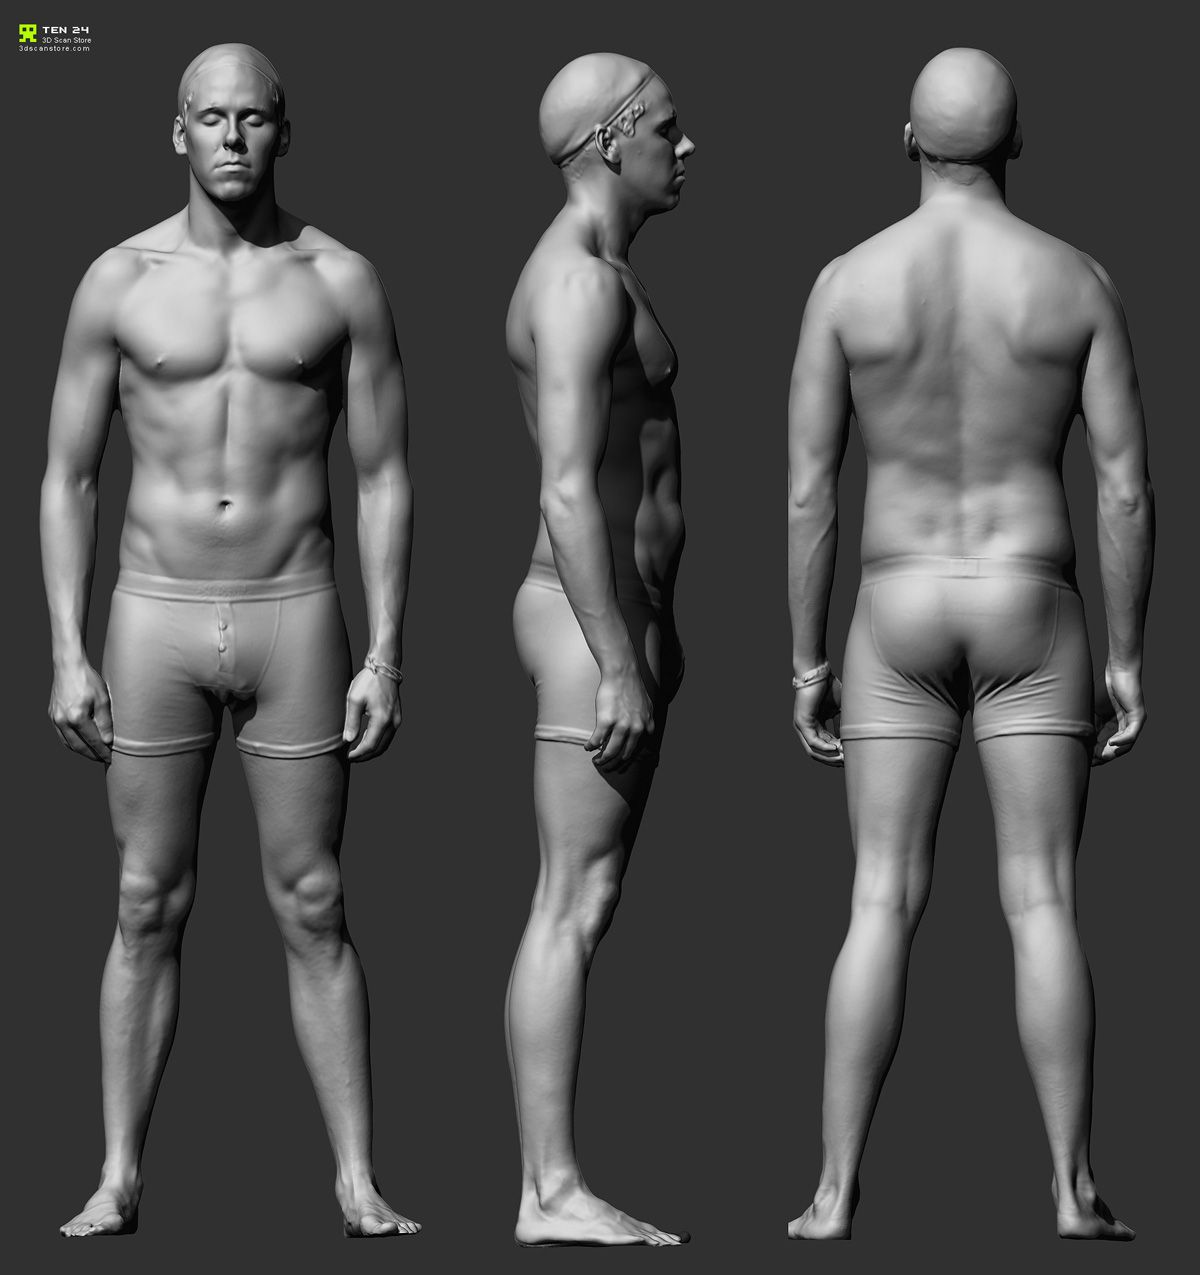 Pin By Nunun Nanna On Zbrush In 2018 Pinterest Anatomy Reference Full Body Muscle Diagram Hand Study Male Sculpture